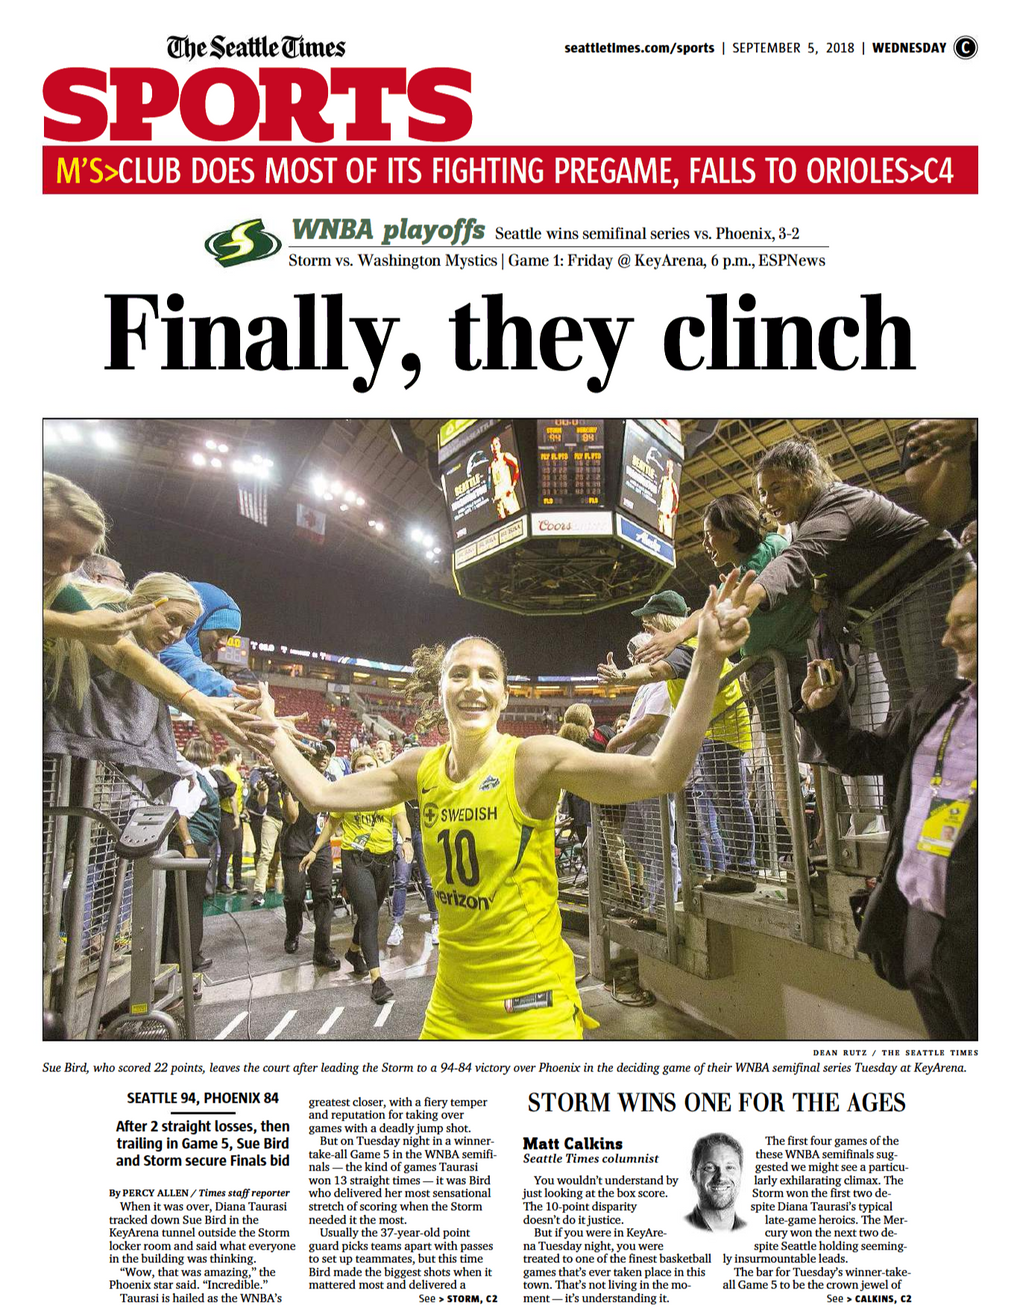 The front of The Seattle Times sports section Wednesday, Sept. 5, 2018, the day after the Storm clinched a spot in the WNBA Finals.